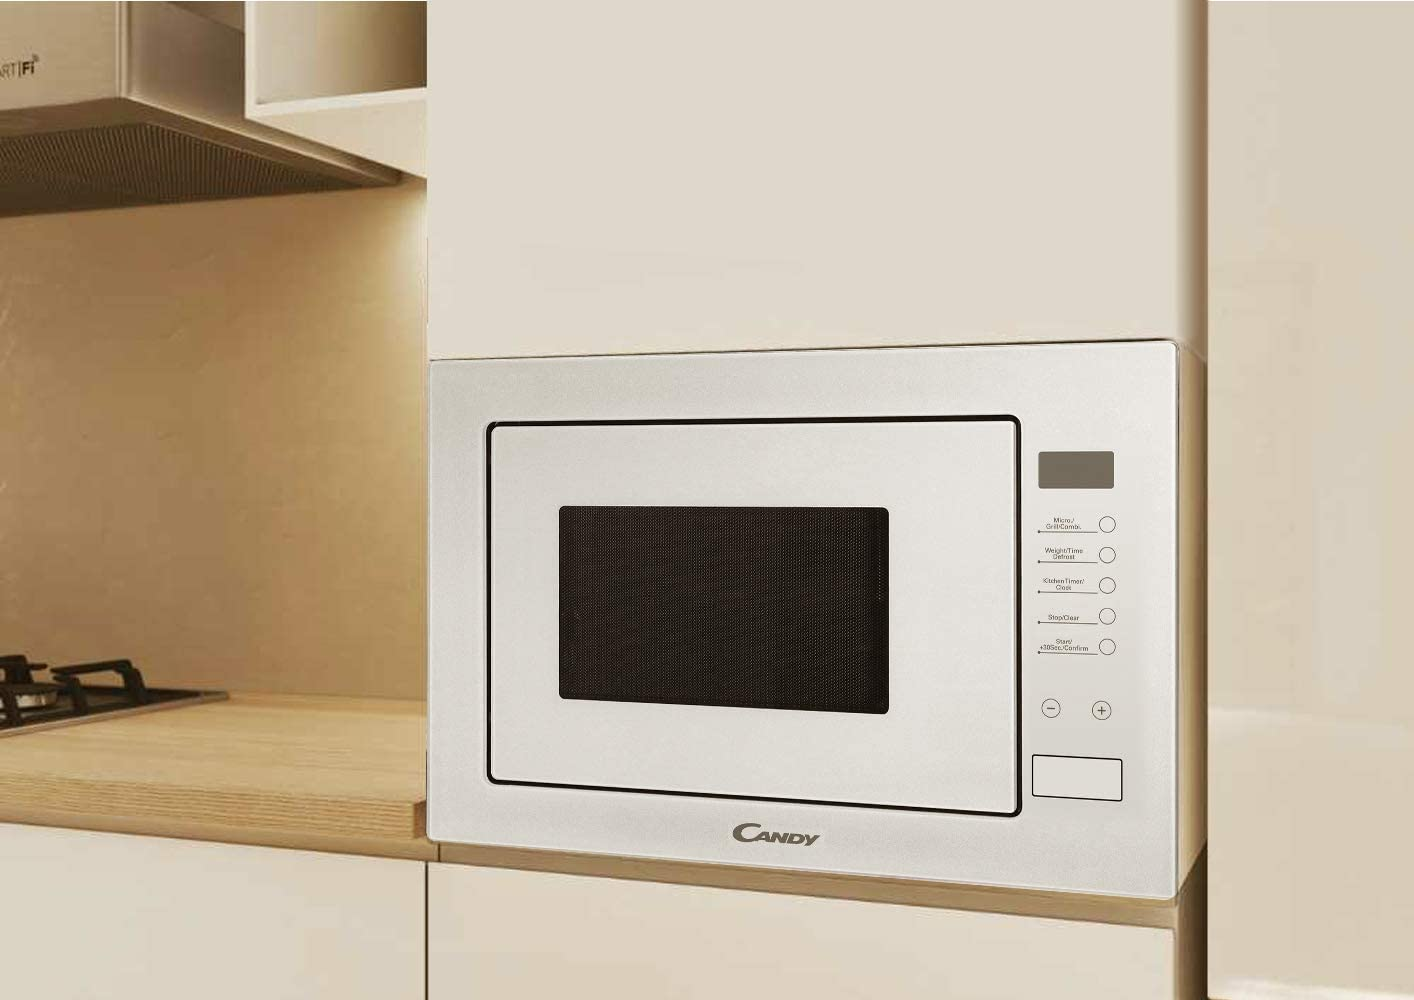 Candy MICG25GDFW - Microondas integrable con grill sin marco ...